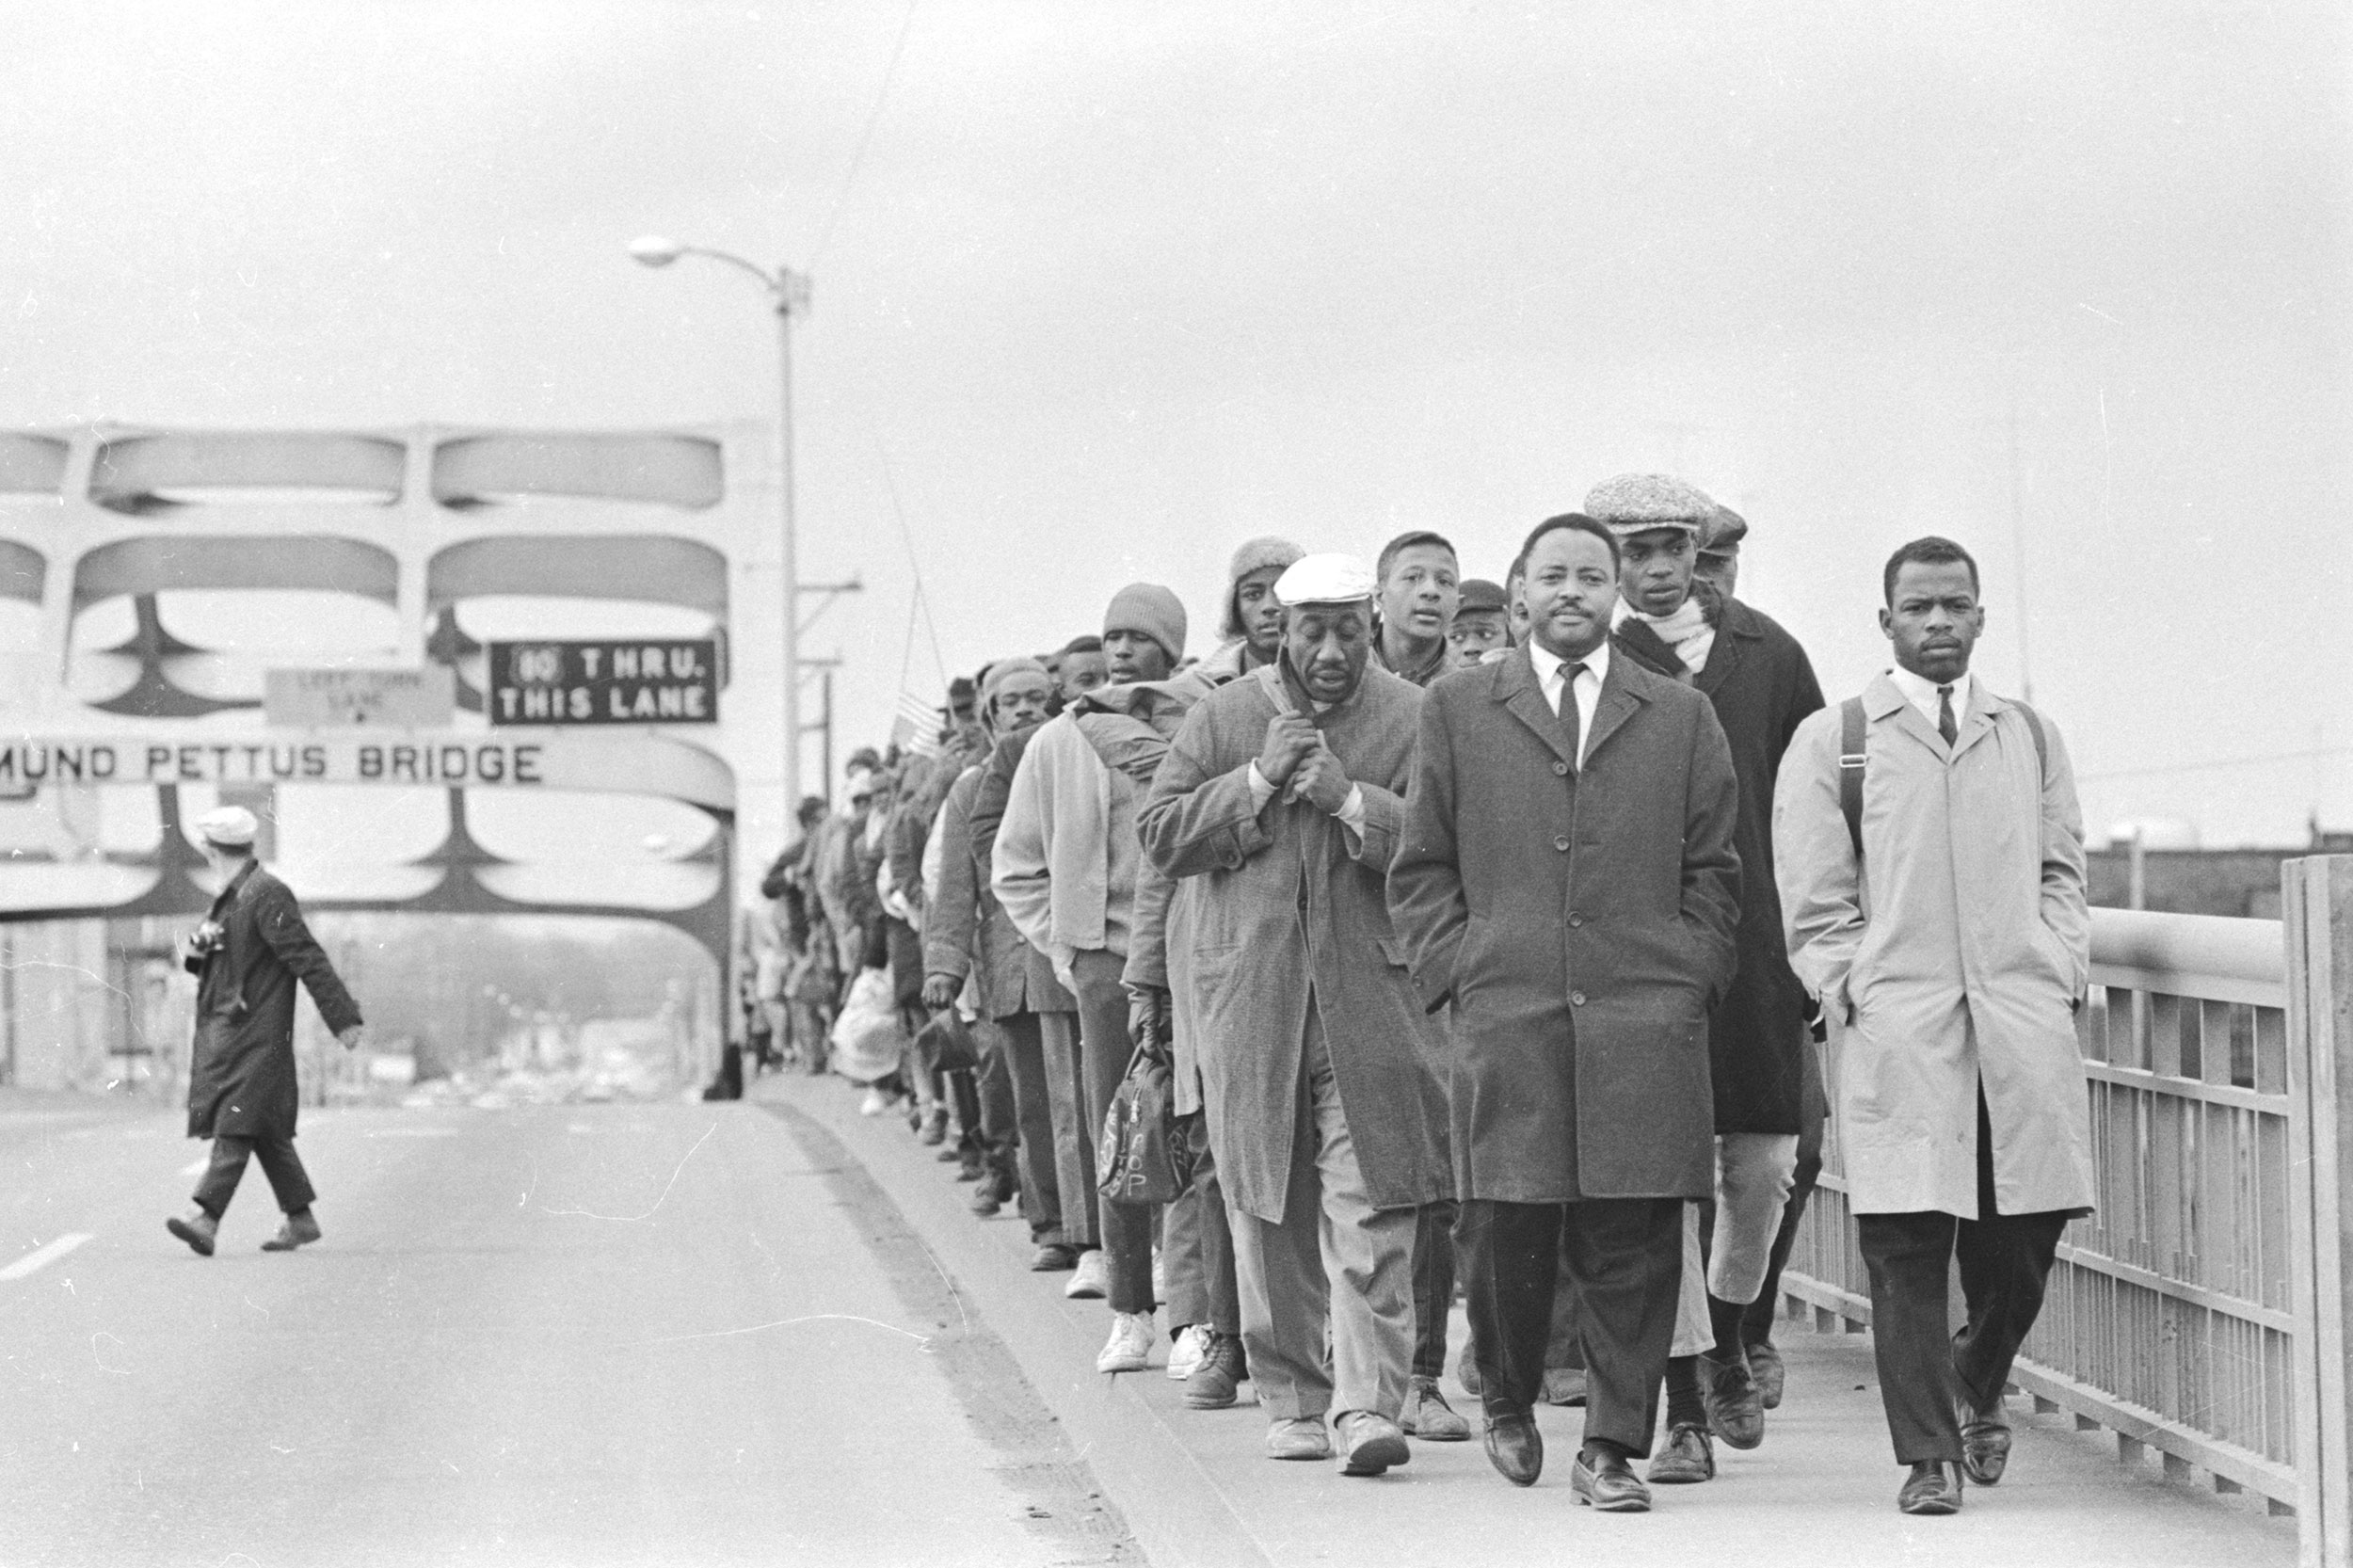 Hundreds risked everything in Selma 56 years ago today. This group is trying to identify them